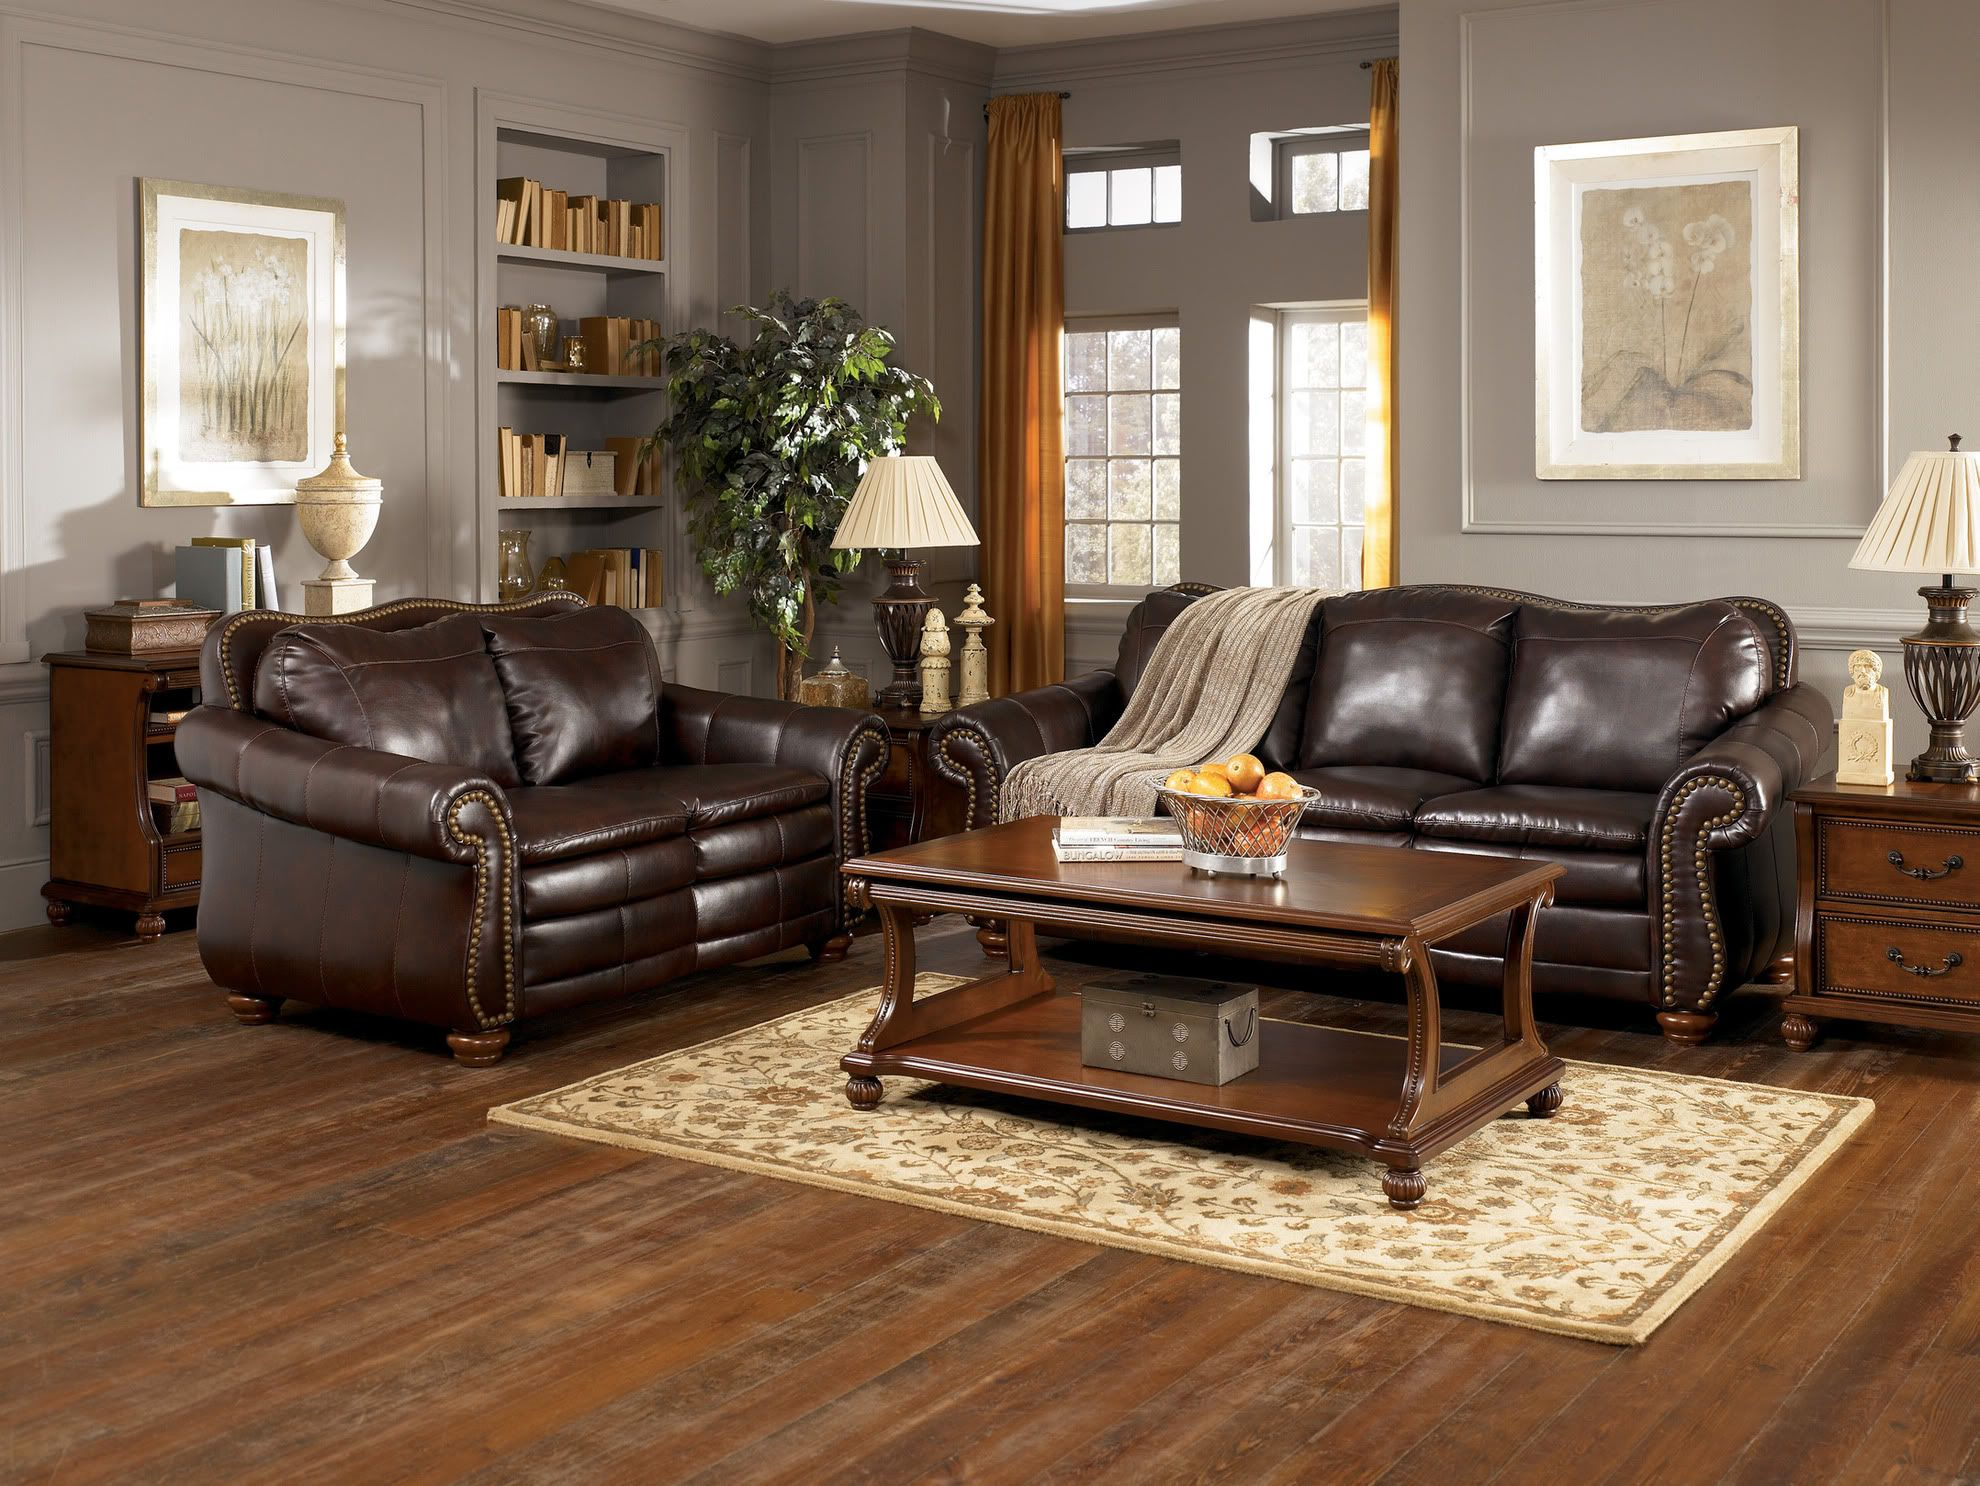 Fetching Grey Living Room With Brown Furniture Design Ideas Living Room Walls Light Also Yellow